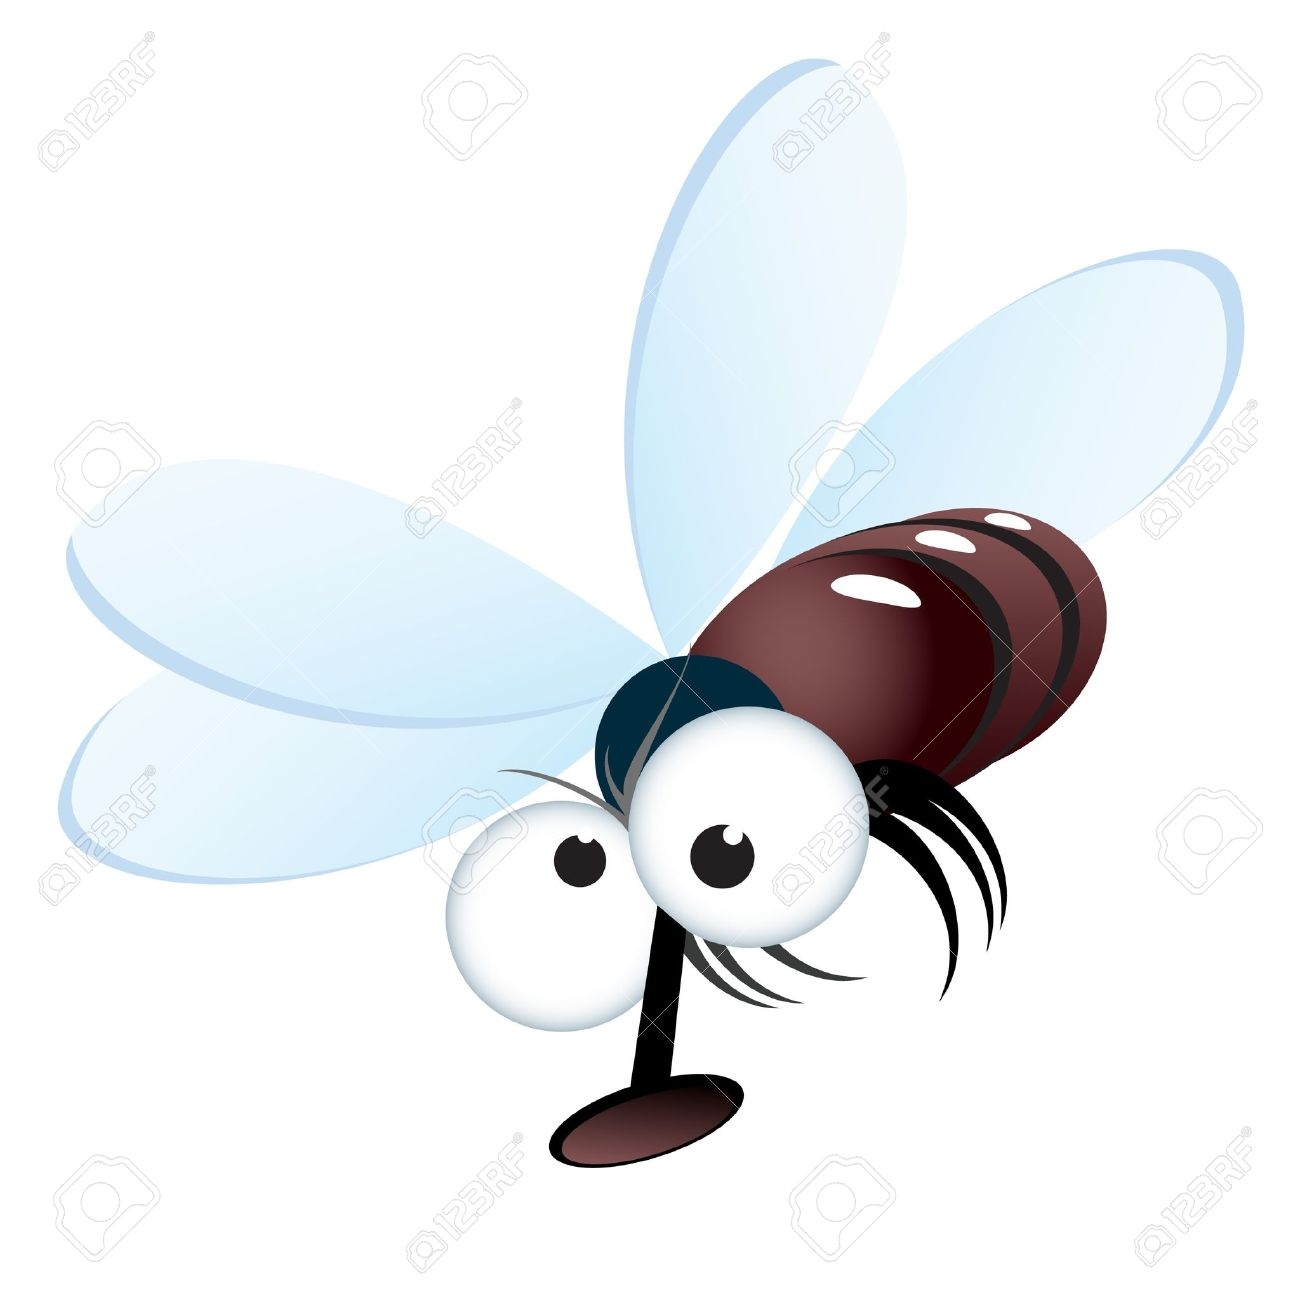 Cartoon style illustration of a fly. Vector illustration on white Stock Vector - 9081124